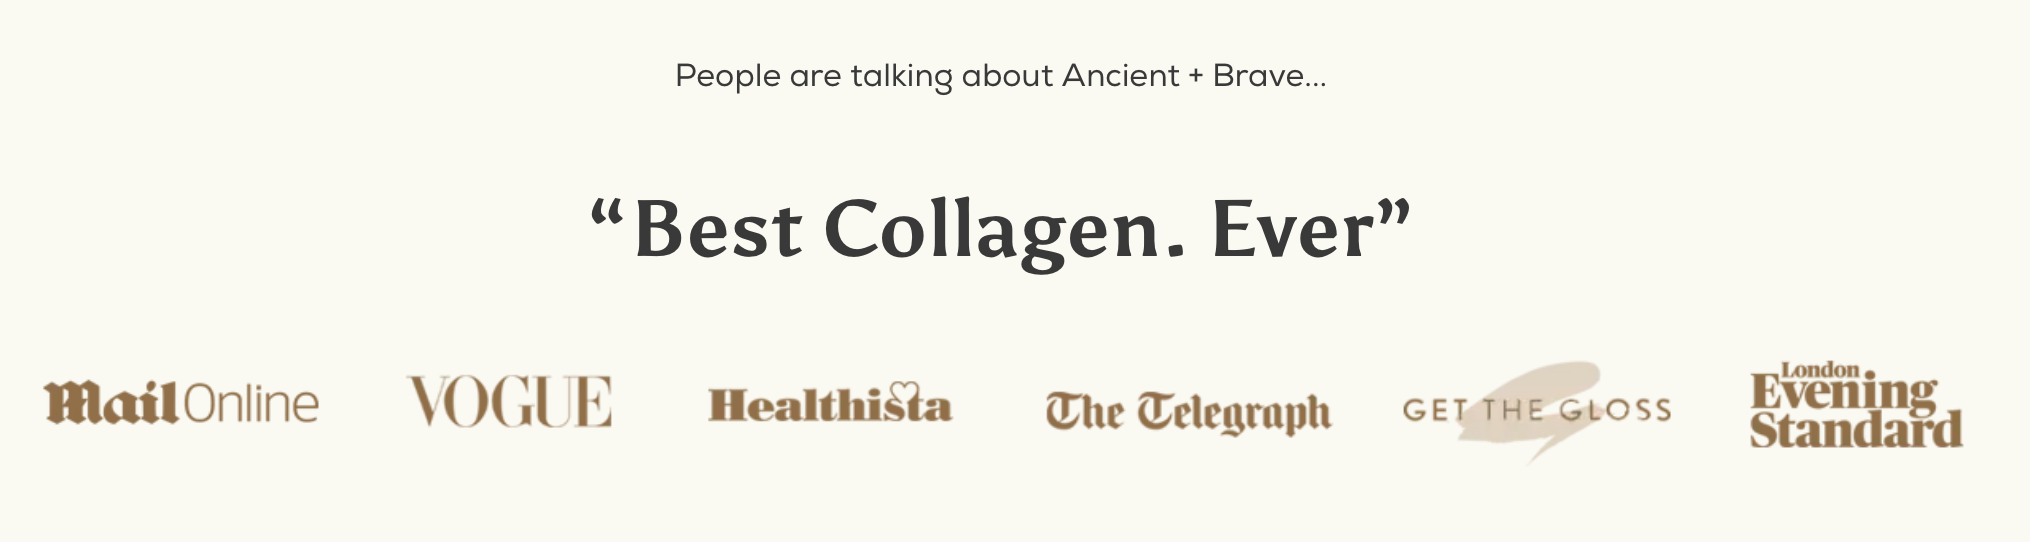 ancient+brave best collagen ever